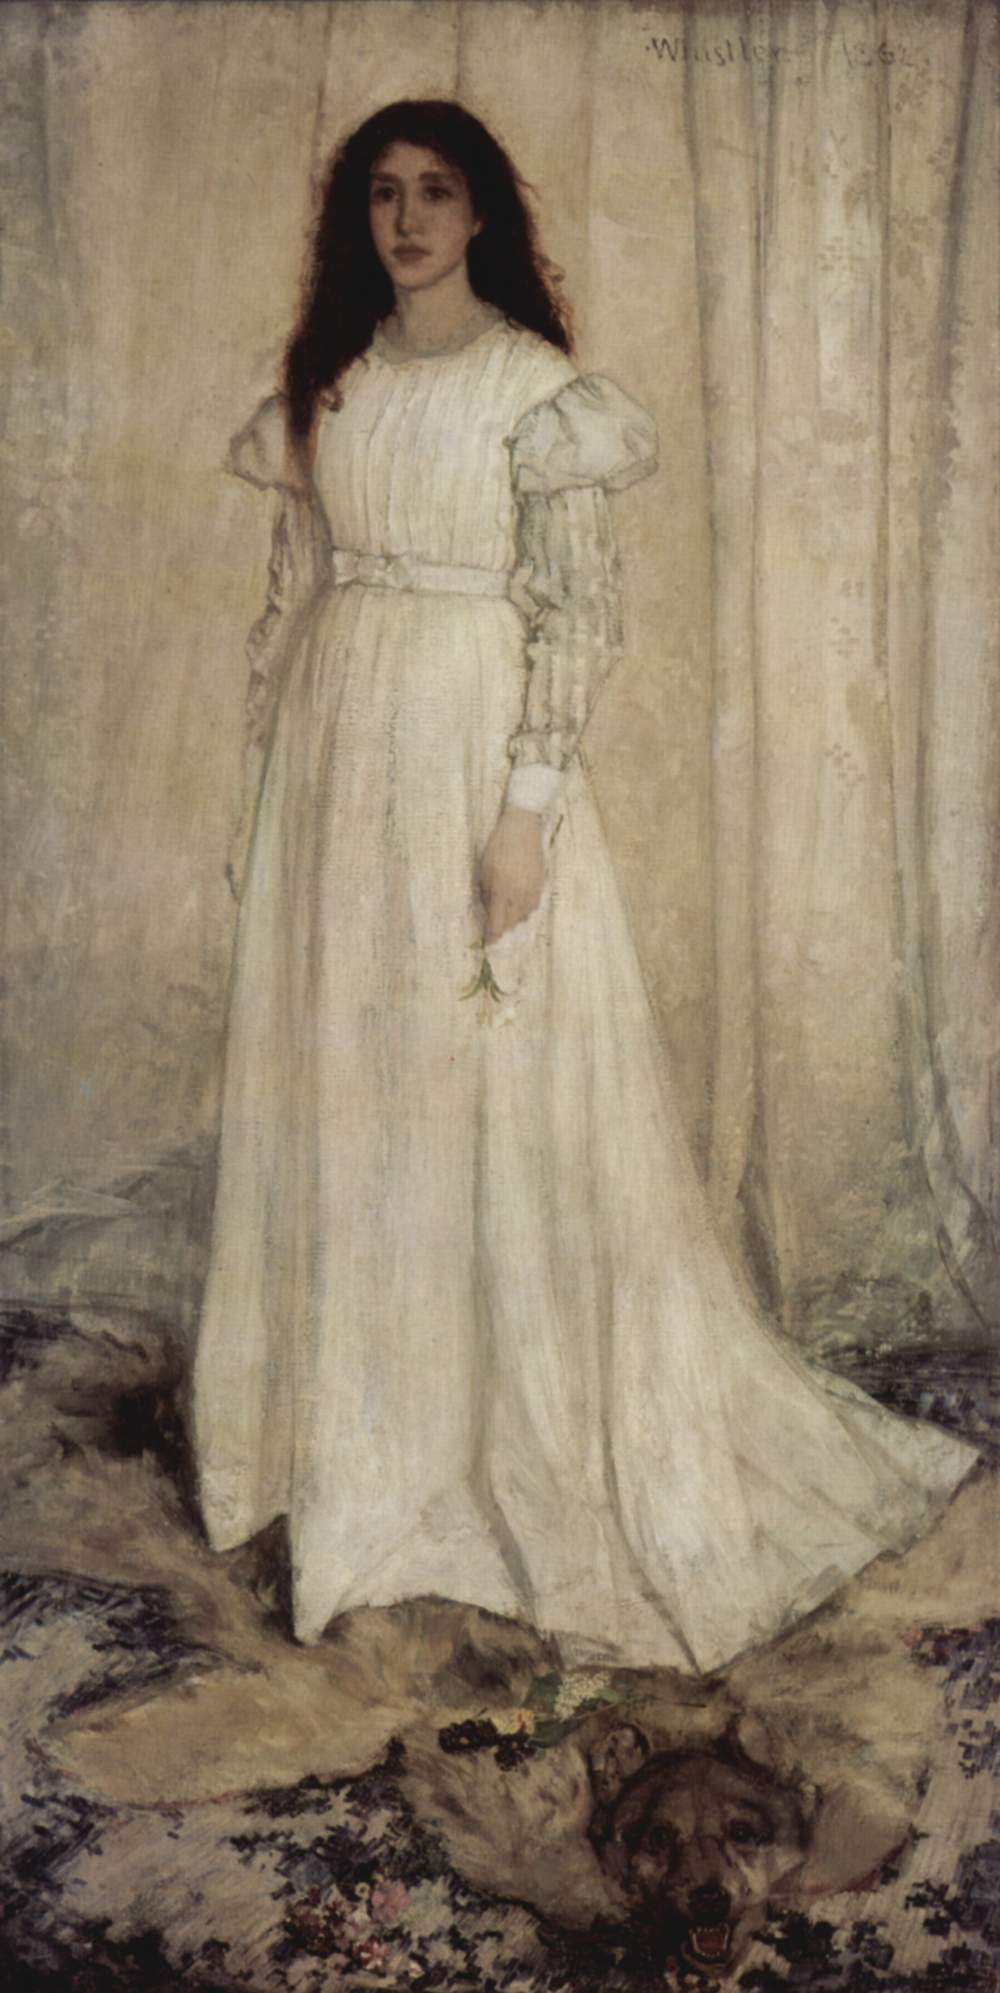 https://upload.wikimedia.org/wikipedia/commons/3/3d/Symphony_in_White_no_1_-_The_White_Girl_-_Portrait_of_Joanna_Hiffernan_%28by_James_Abbot_McNeill_Whistler%29.jpg